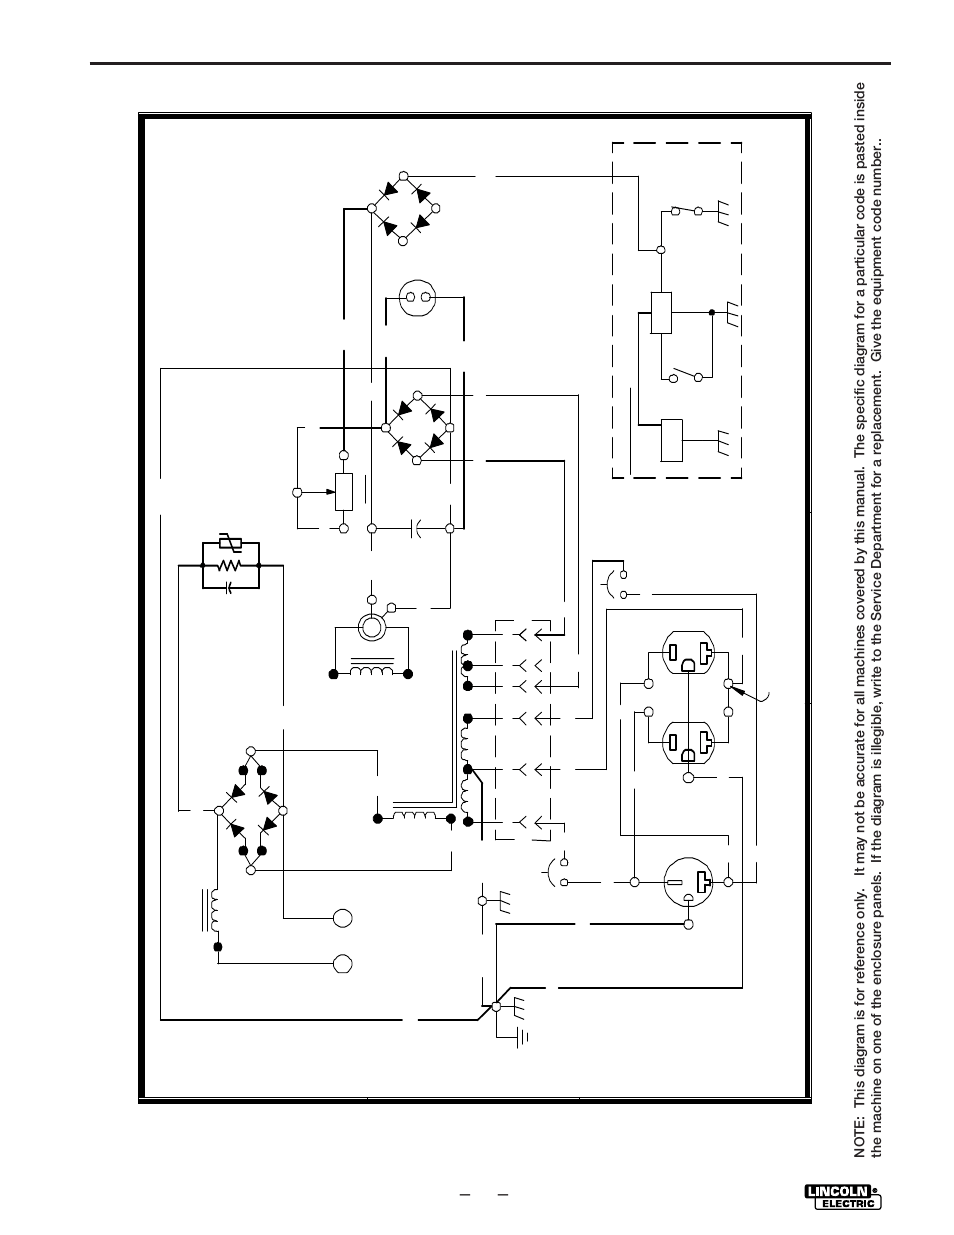 62 lincoln engine diagram